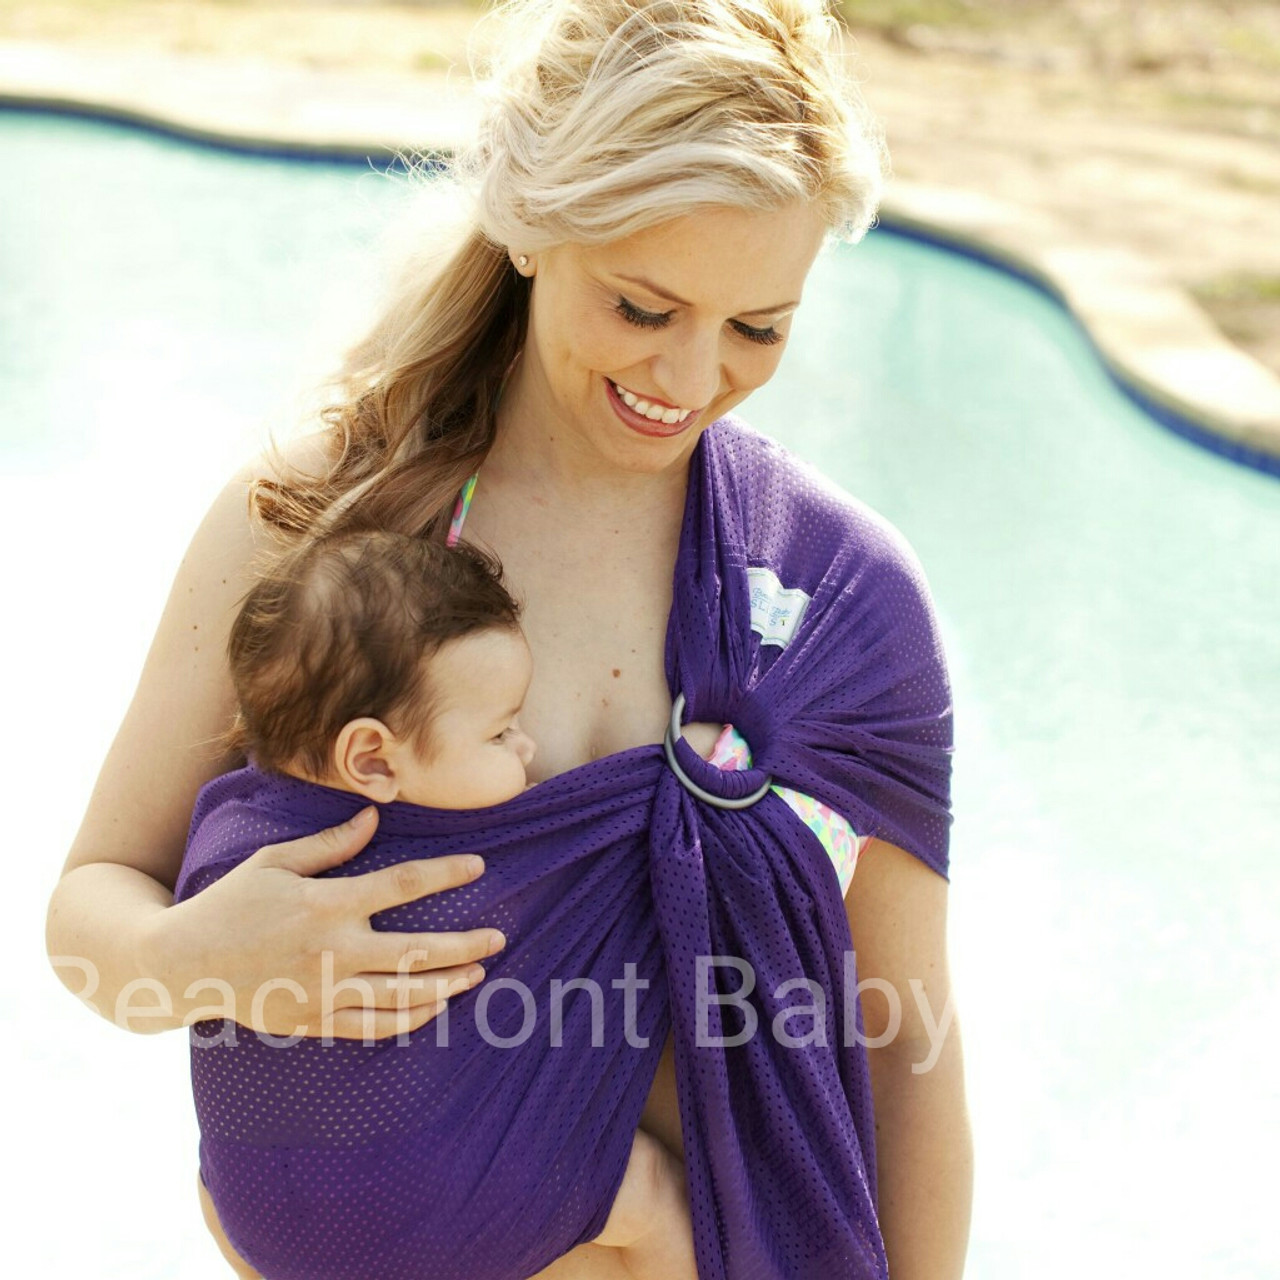 f8bc0e1492d Beachfront Baby Lightweight and Water Ring Sling -